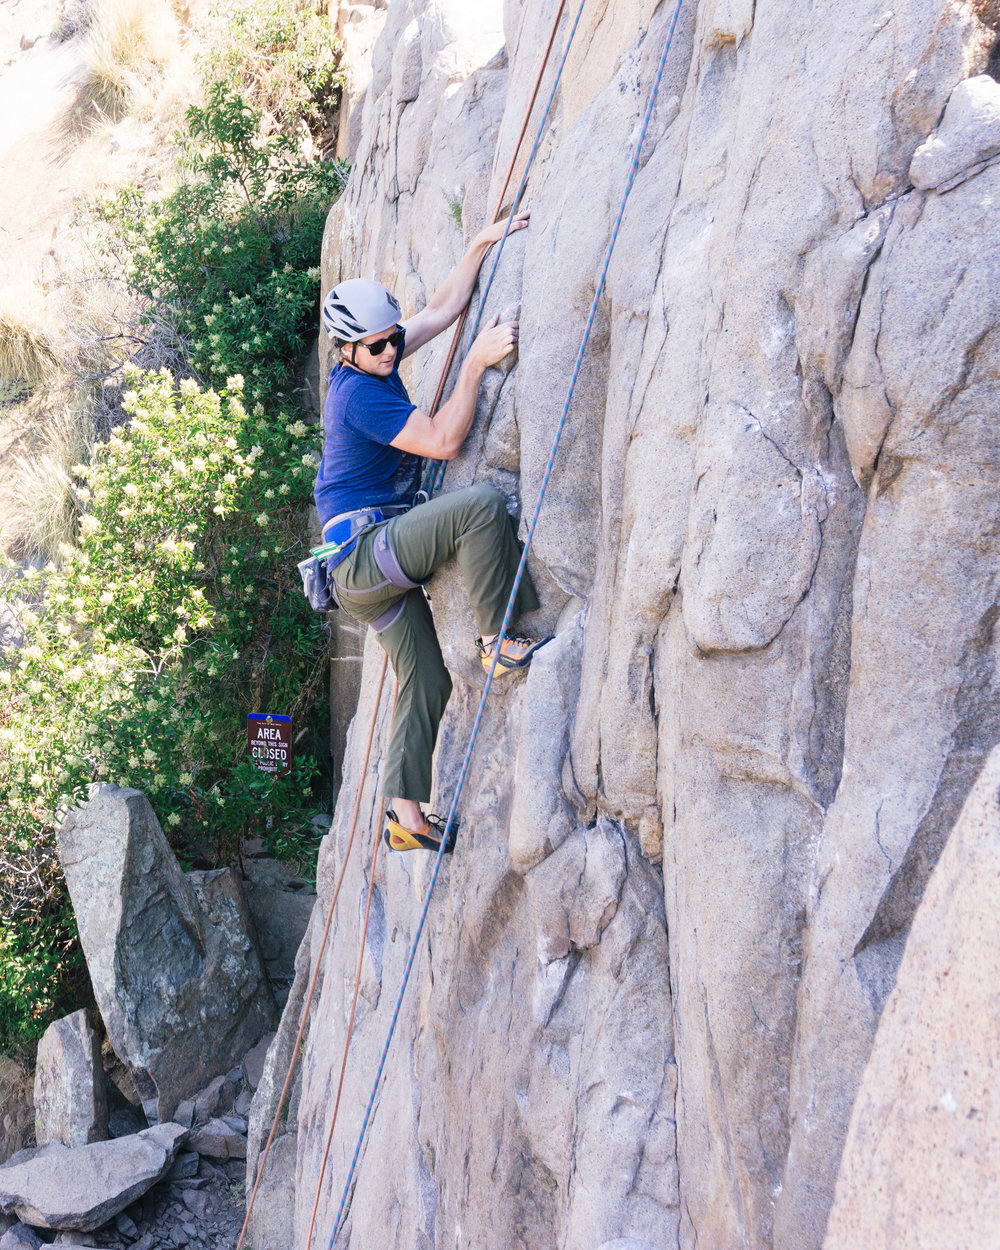 Mission Gorge Rock Climbing San Diego, California Southern California